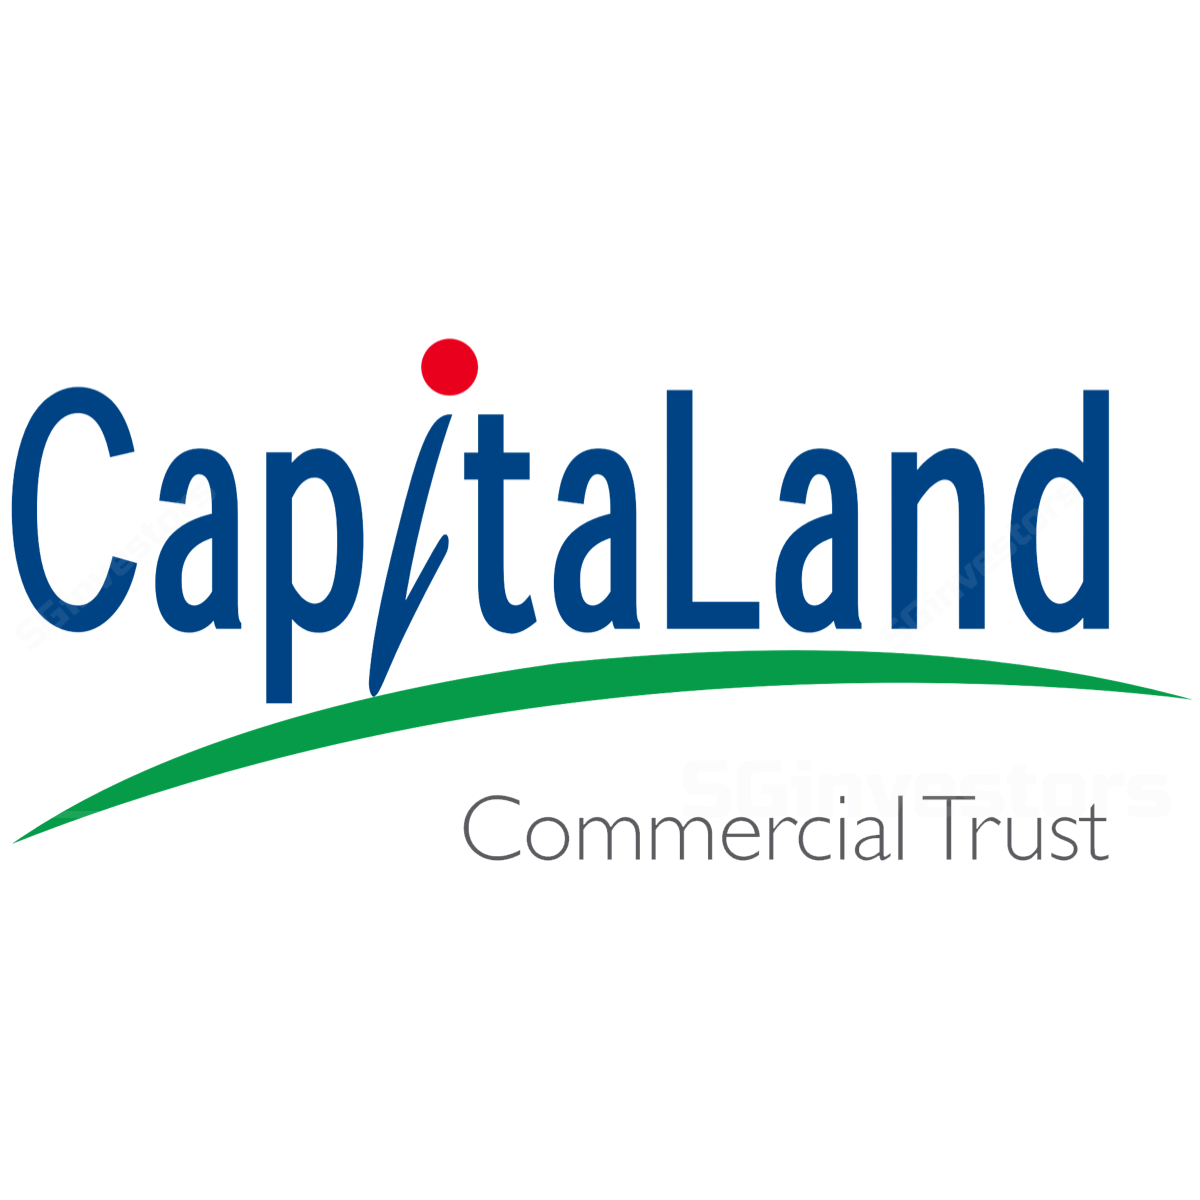 CapitaLand Commercial Trust (CCT SP) - Maybank Kim Eng 2017-10-20: Look Beyond The DPU Dilution